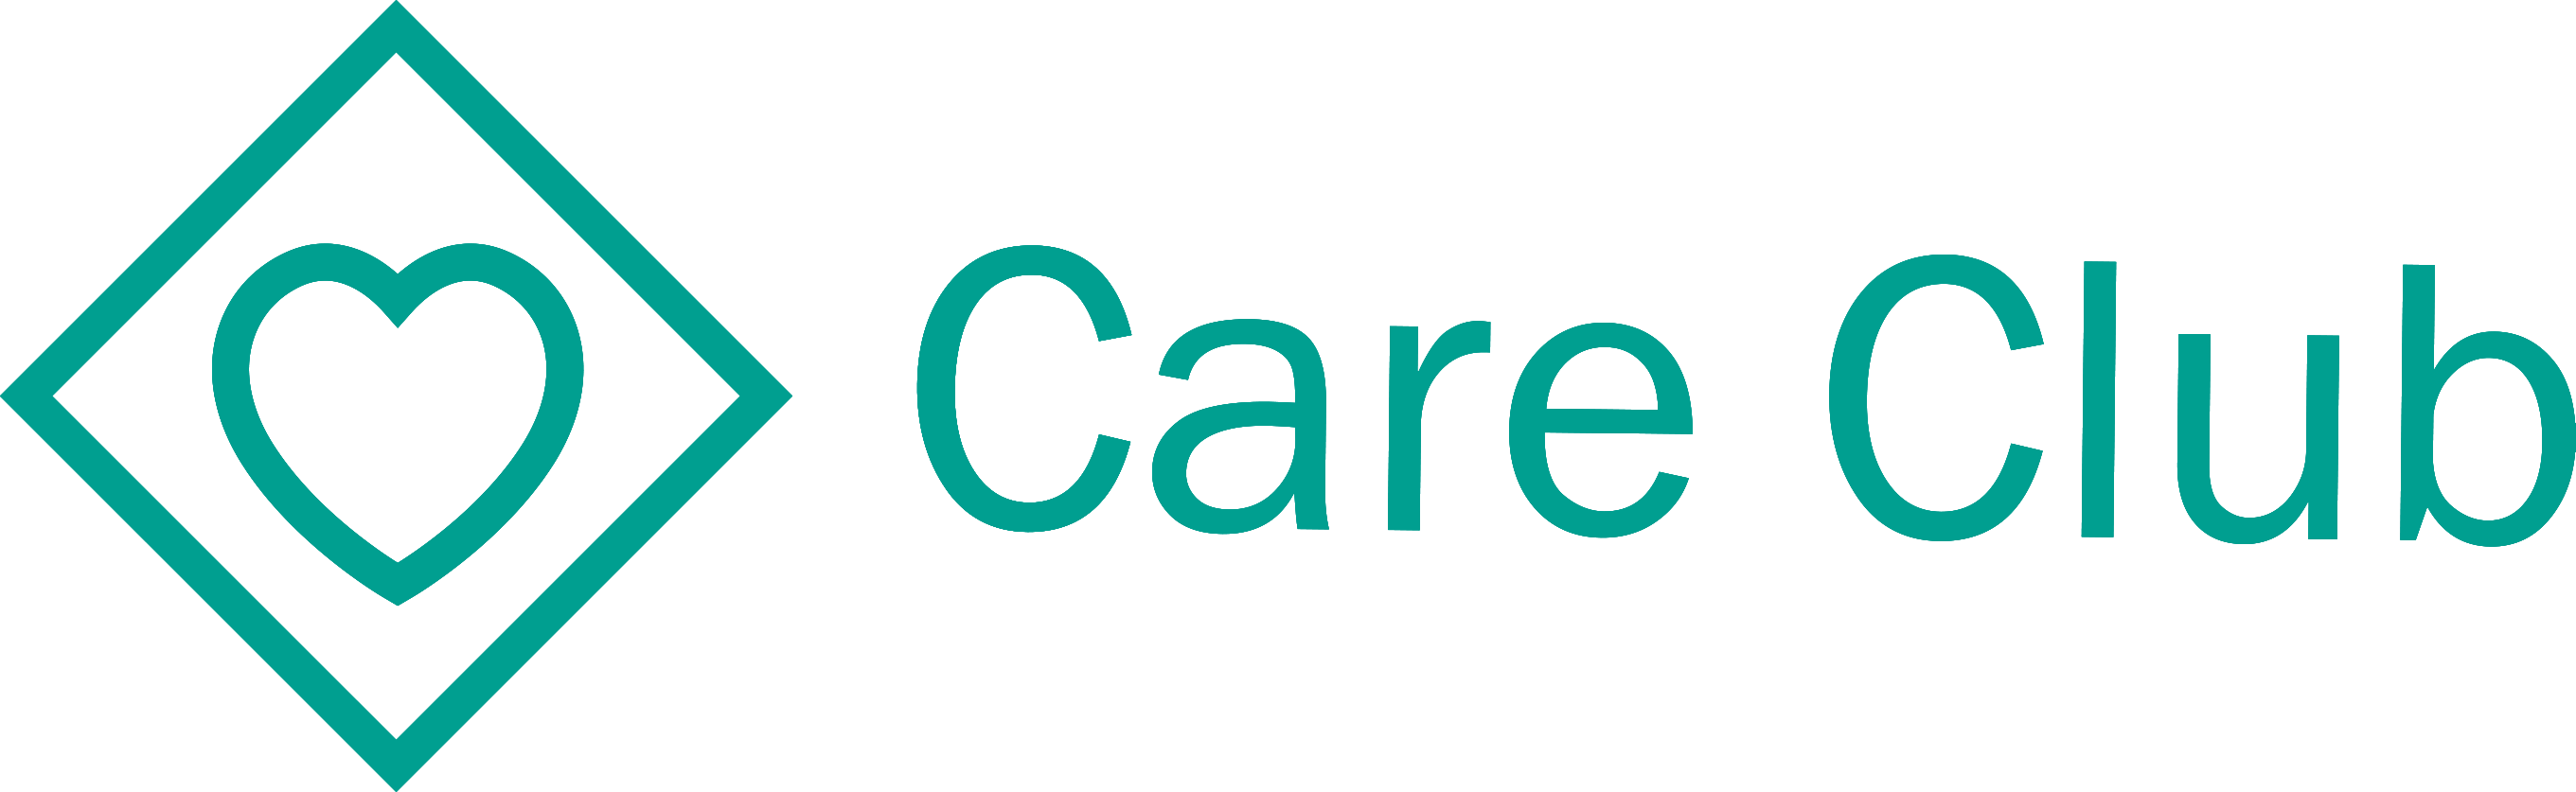 care club logo